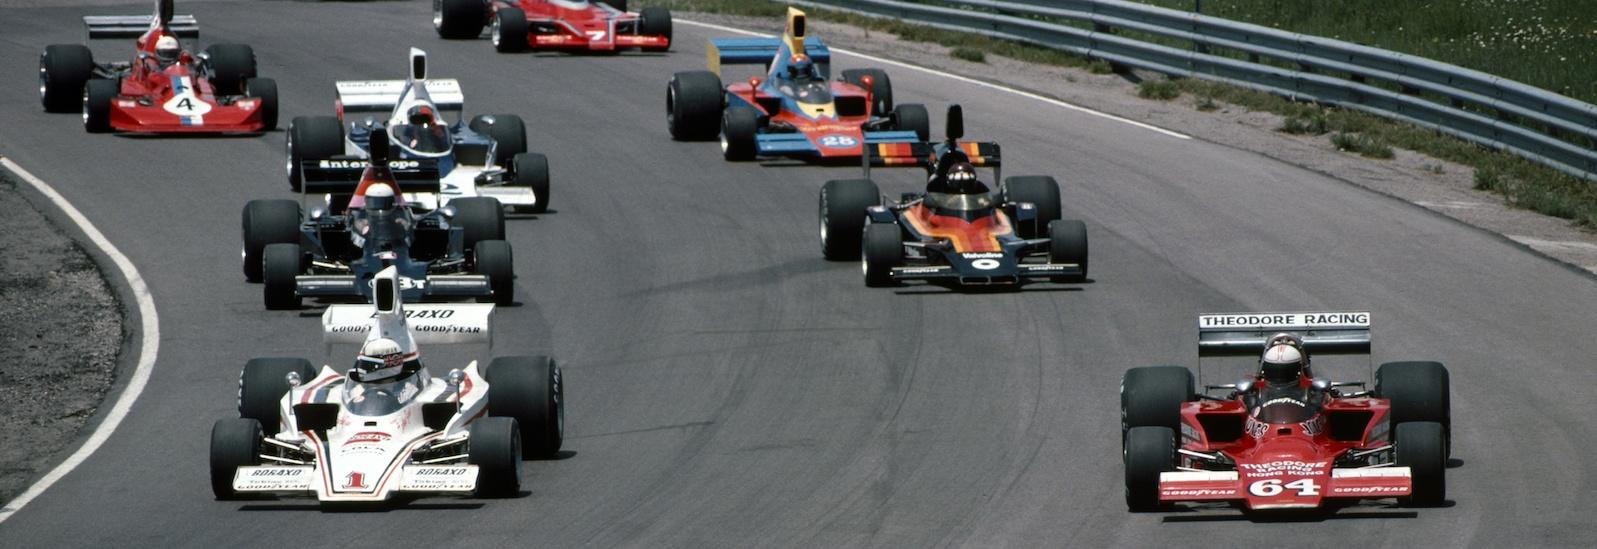 Formula 5000 field for Goodwood Members' Meeting announced